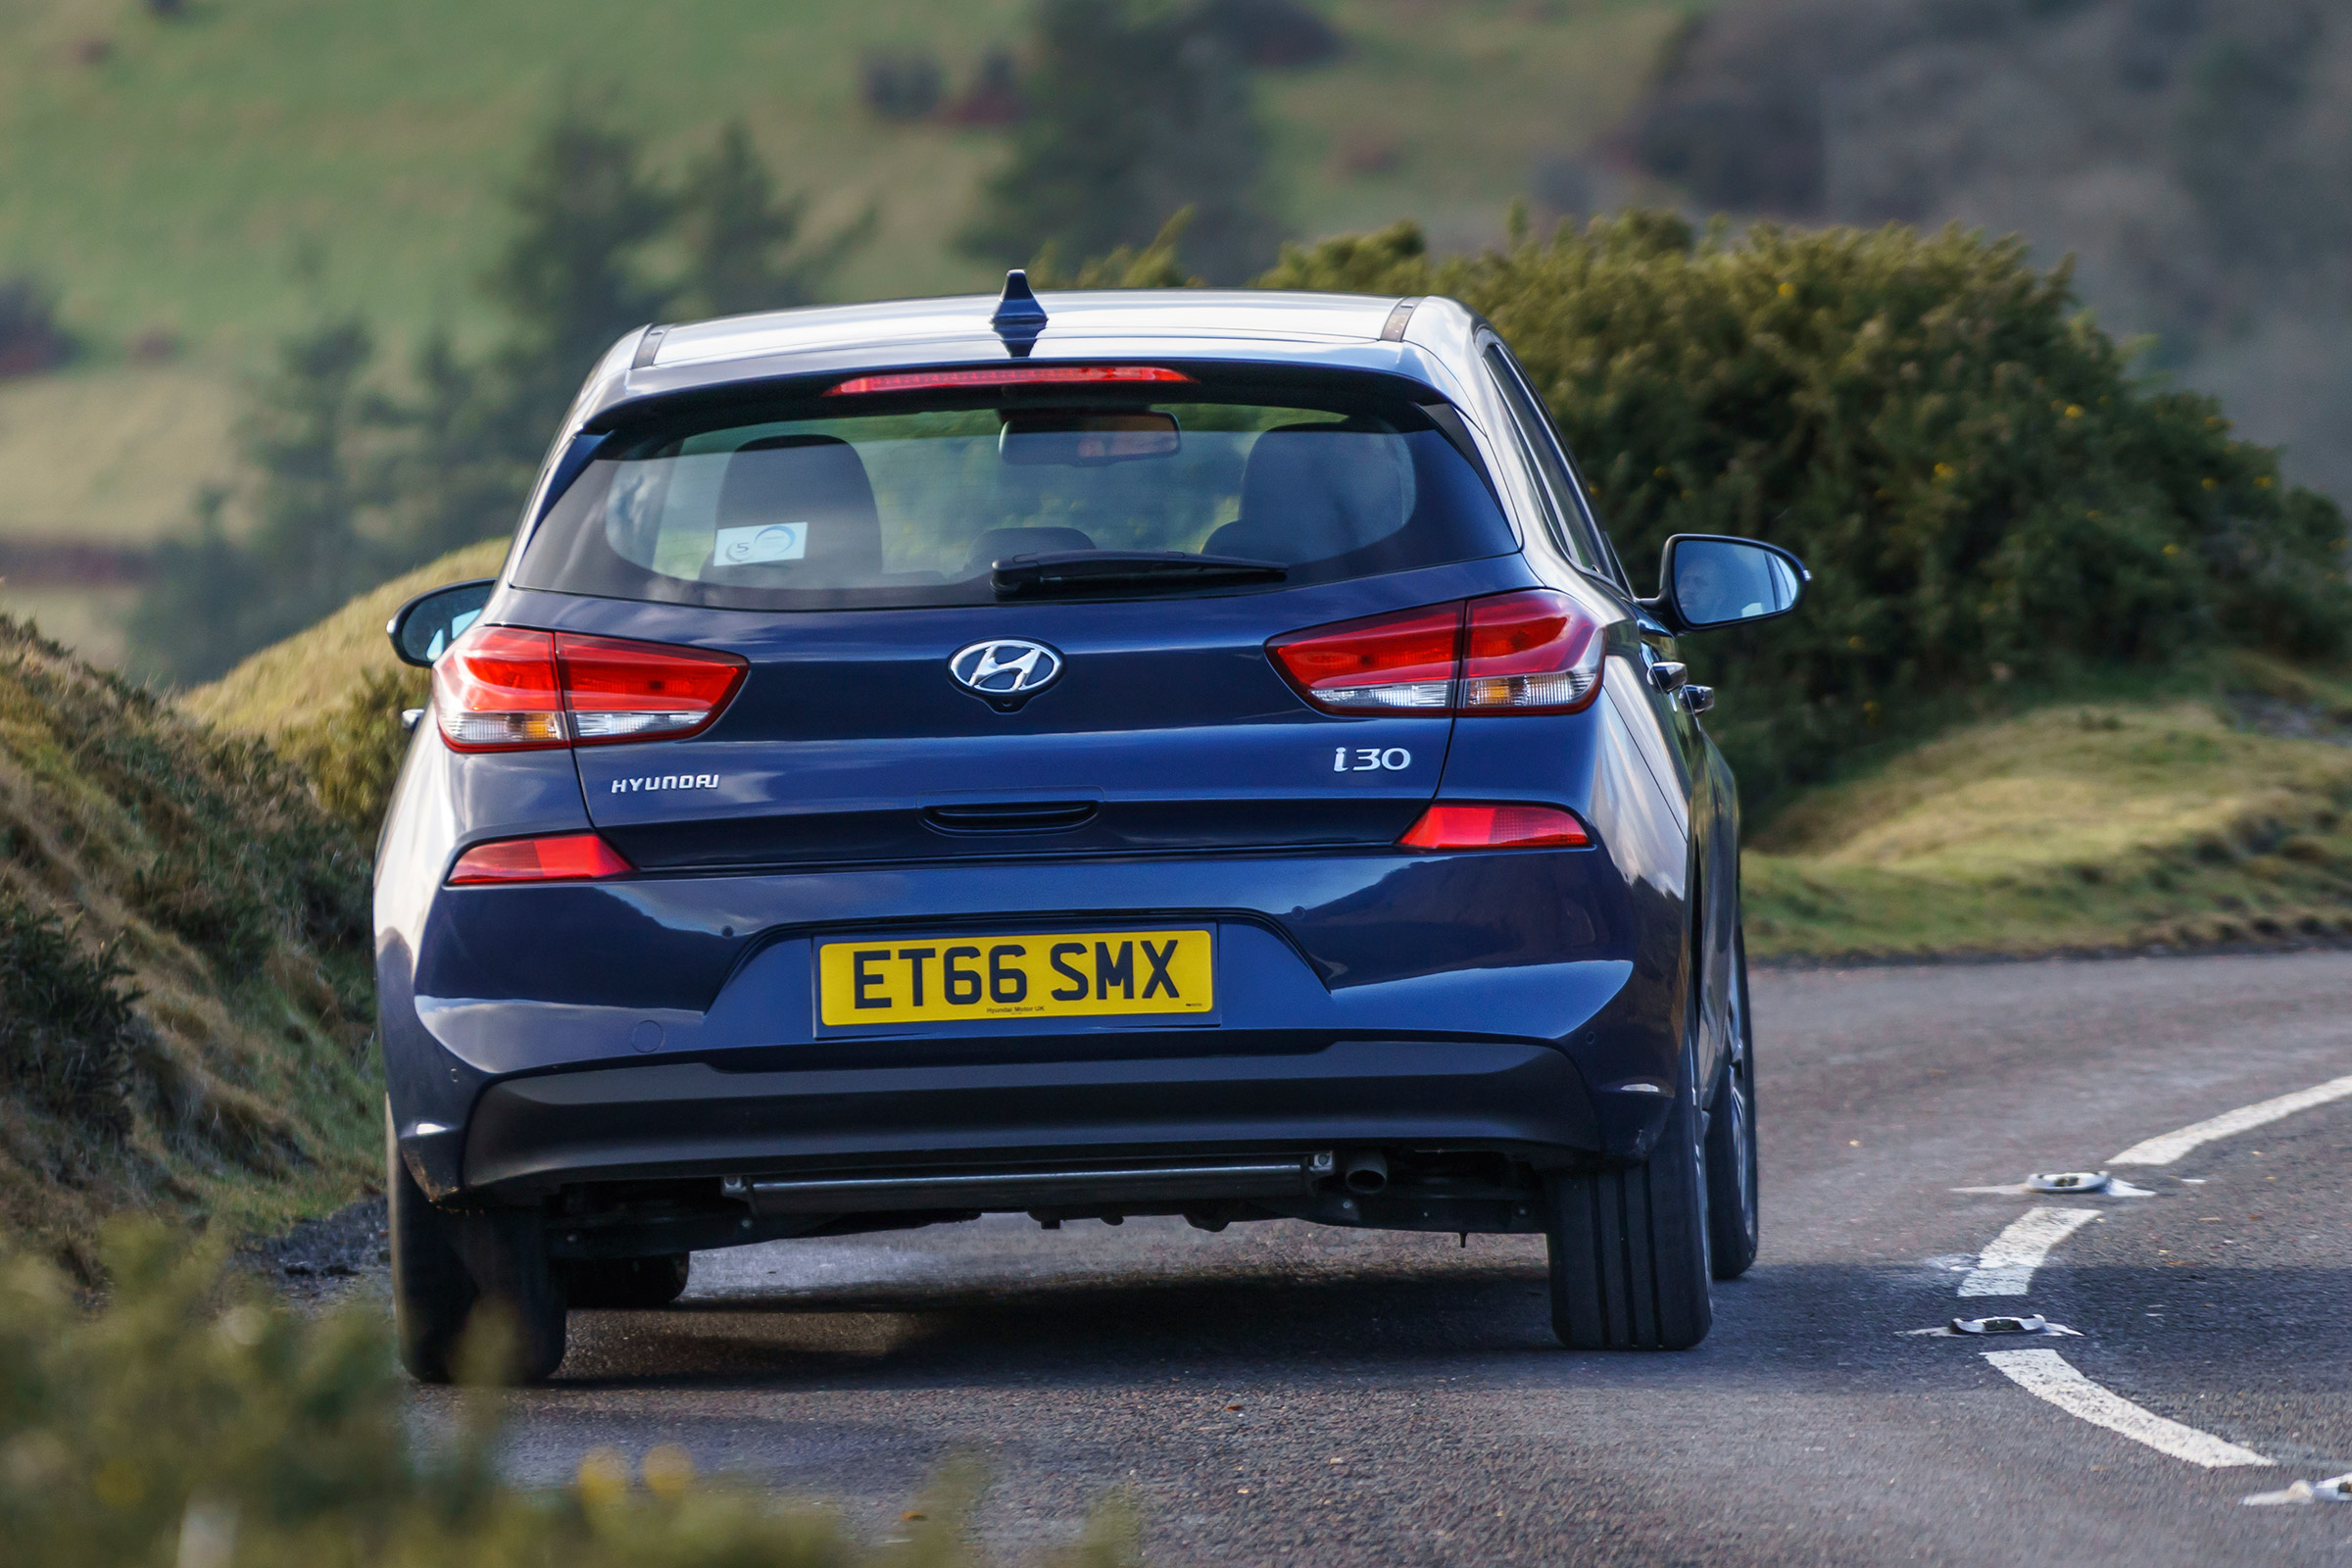 2017 Hyundai I30 Test Drive Rear View (View 1 of 23)